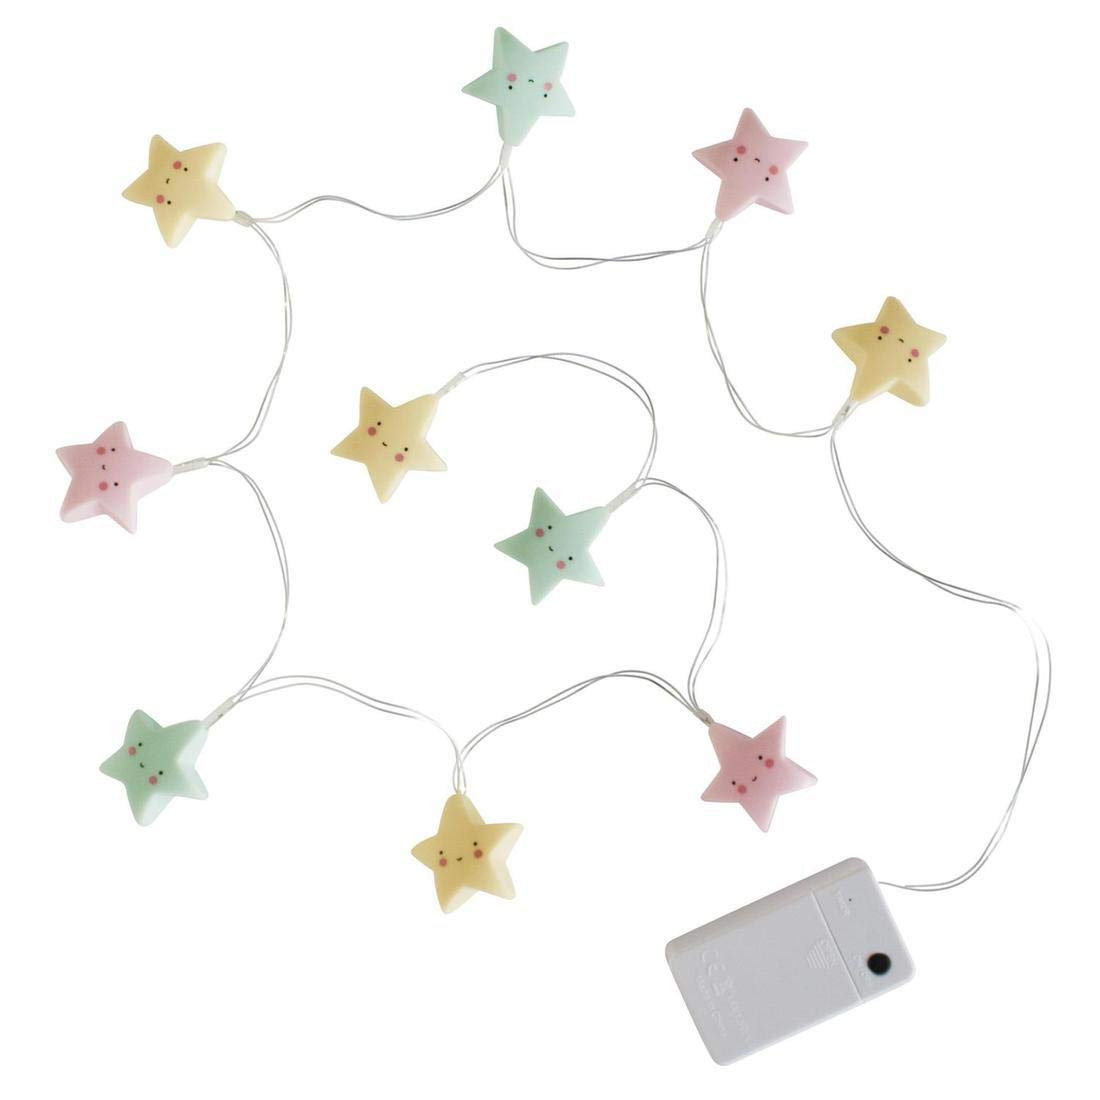 A Little Lovely Company ltst049 – Chain Lights with form of Stars